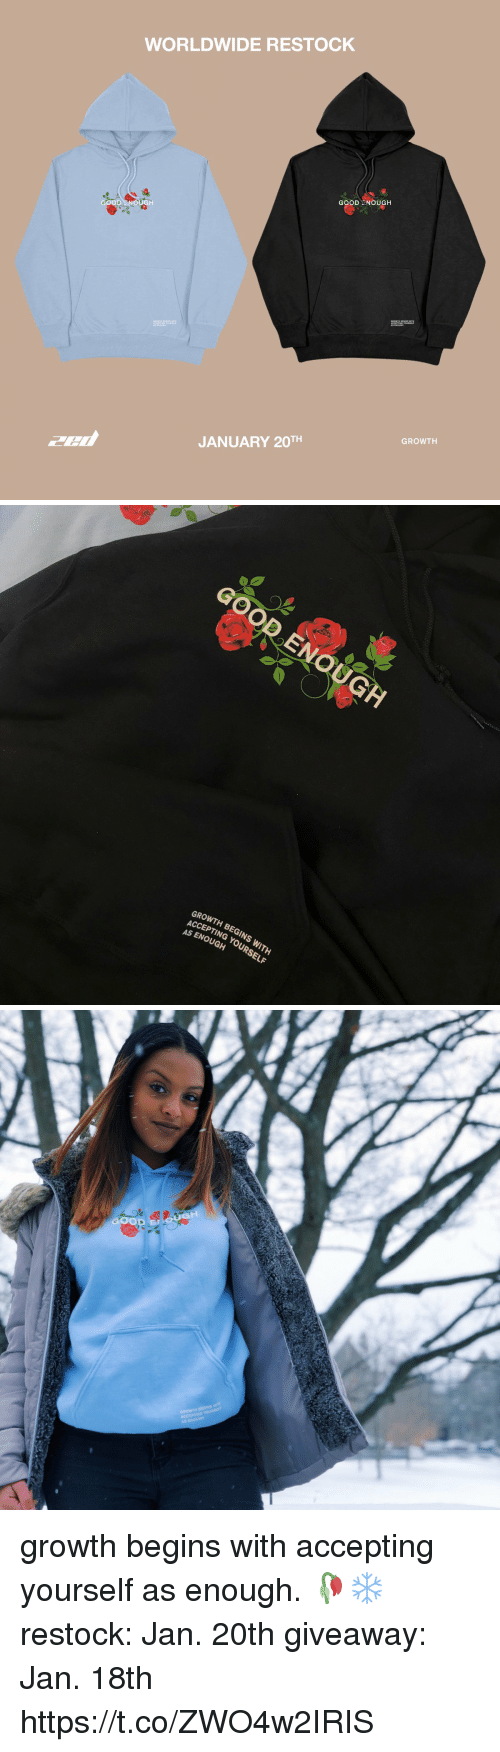 Funny, Good, and Wit: WORLDWIDE RESTOCK  GOOD ENOUGH  JANUARY 20TH  GROWTH   RENOUGH  GROWTH BEGINS WIT  ACCEPTING YOURSELF  AS ENOUGH  0 growth begins with accepting yourself as enough. 🥀❄️  restock: Jan. 20th   giveaway: Jan. 18th https://t.co/ZWO4w2IRIS